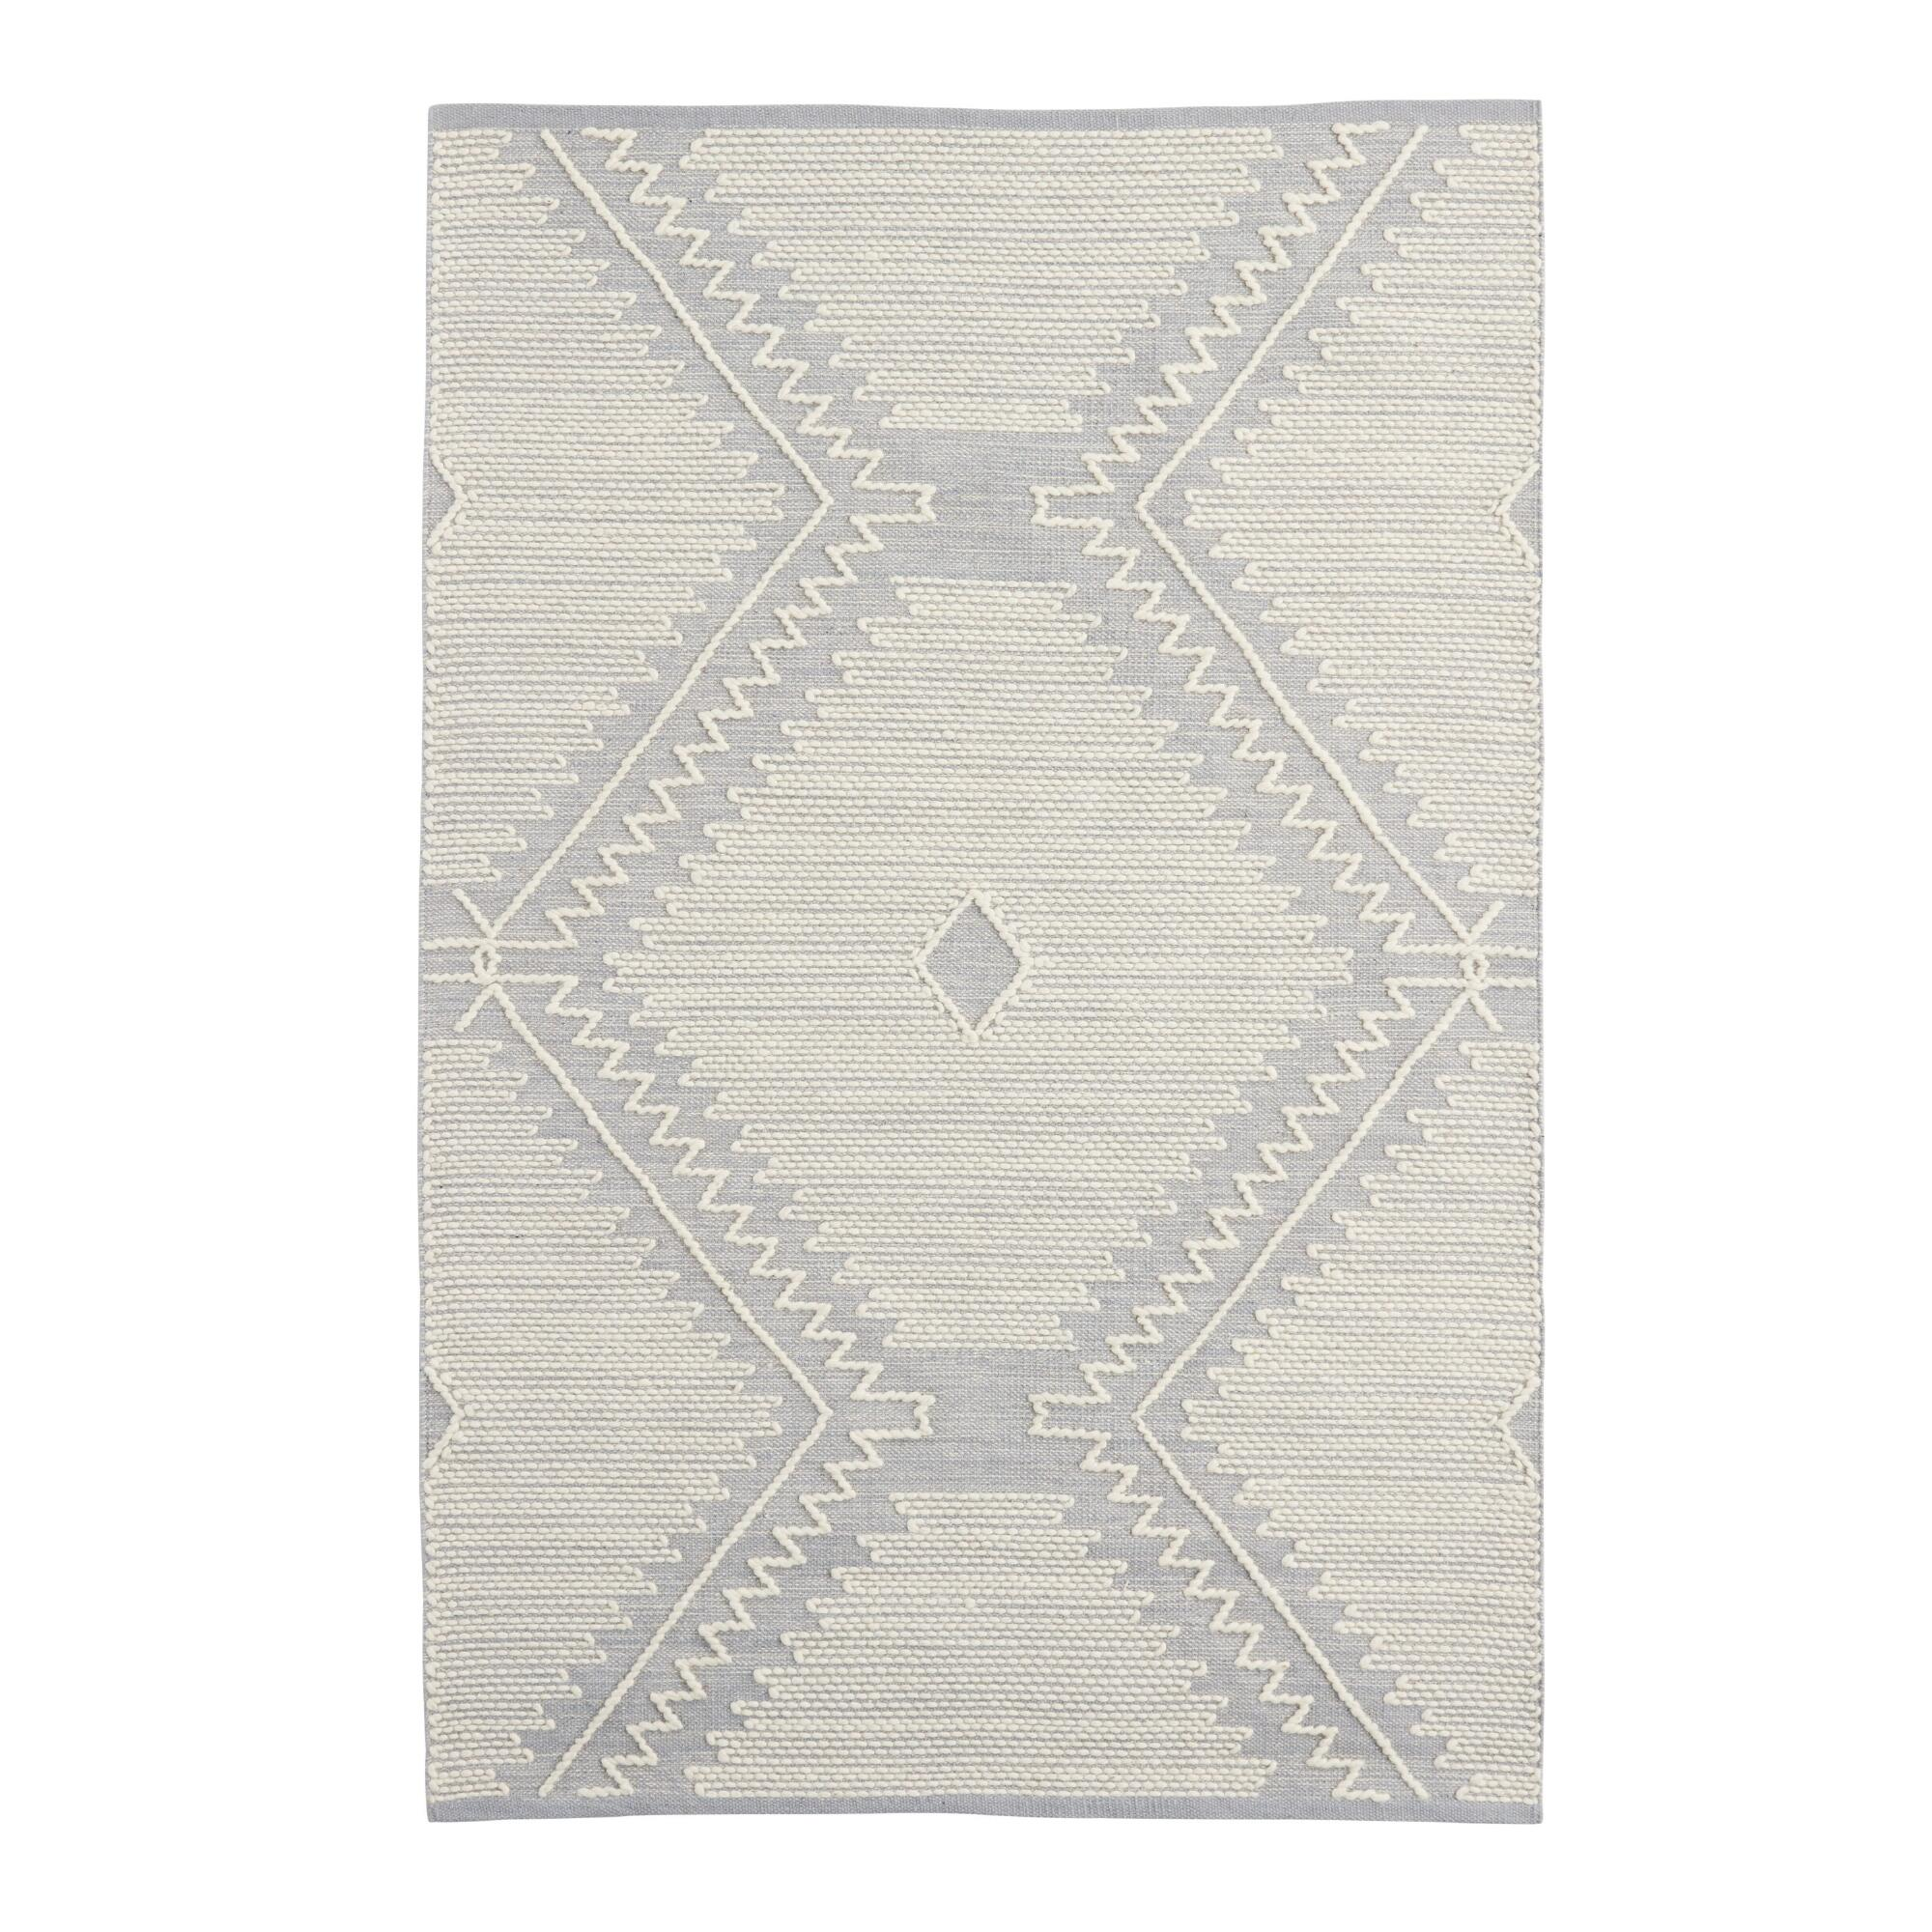 4' X 6' Area Rugs